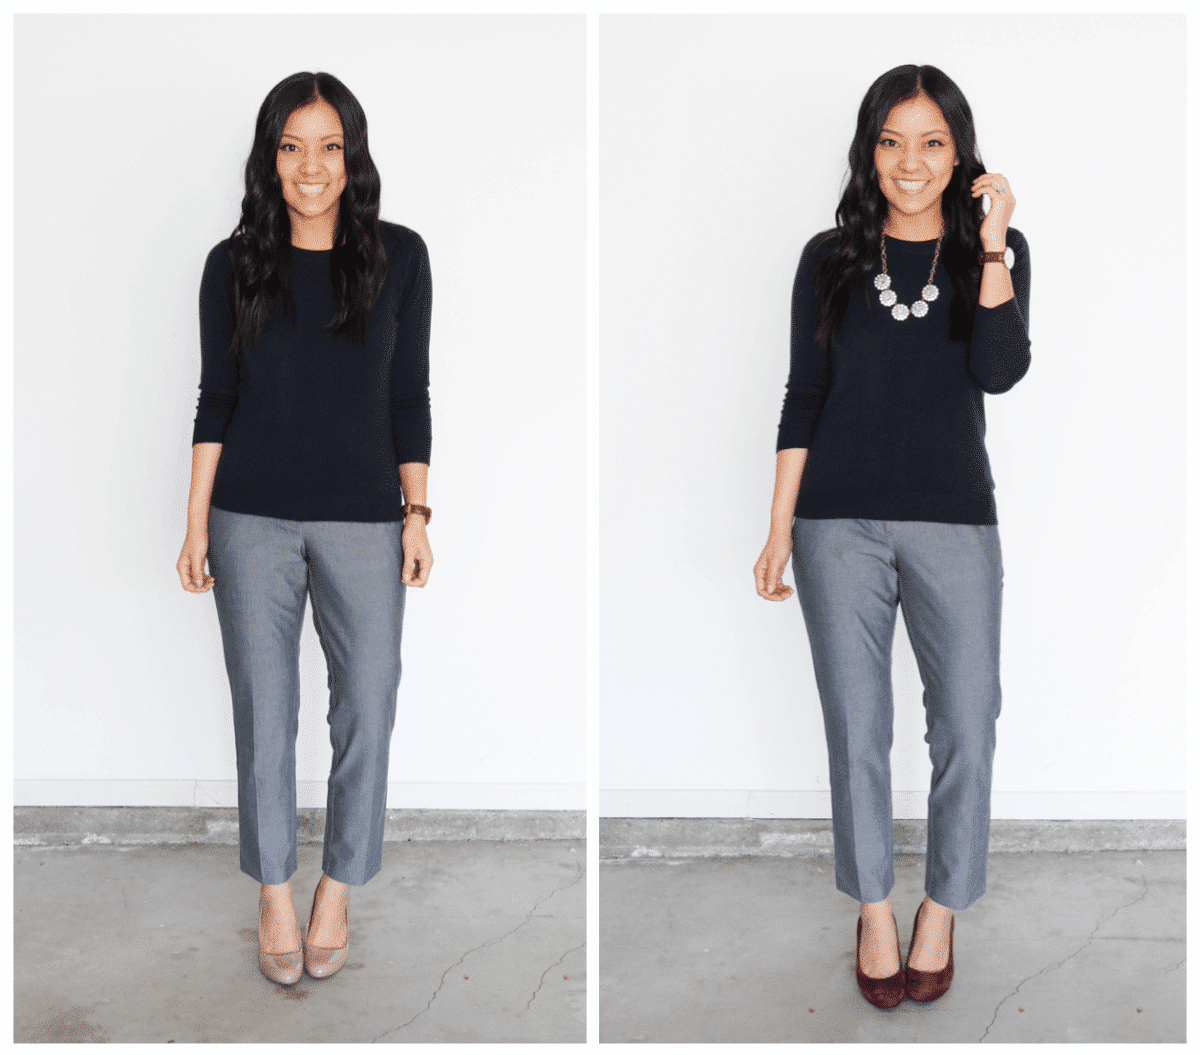 outfit with accessories: black sweater + gray work pants + necklace